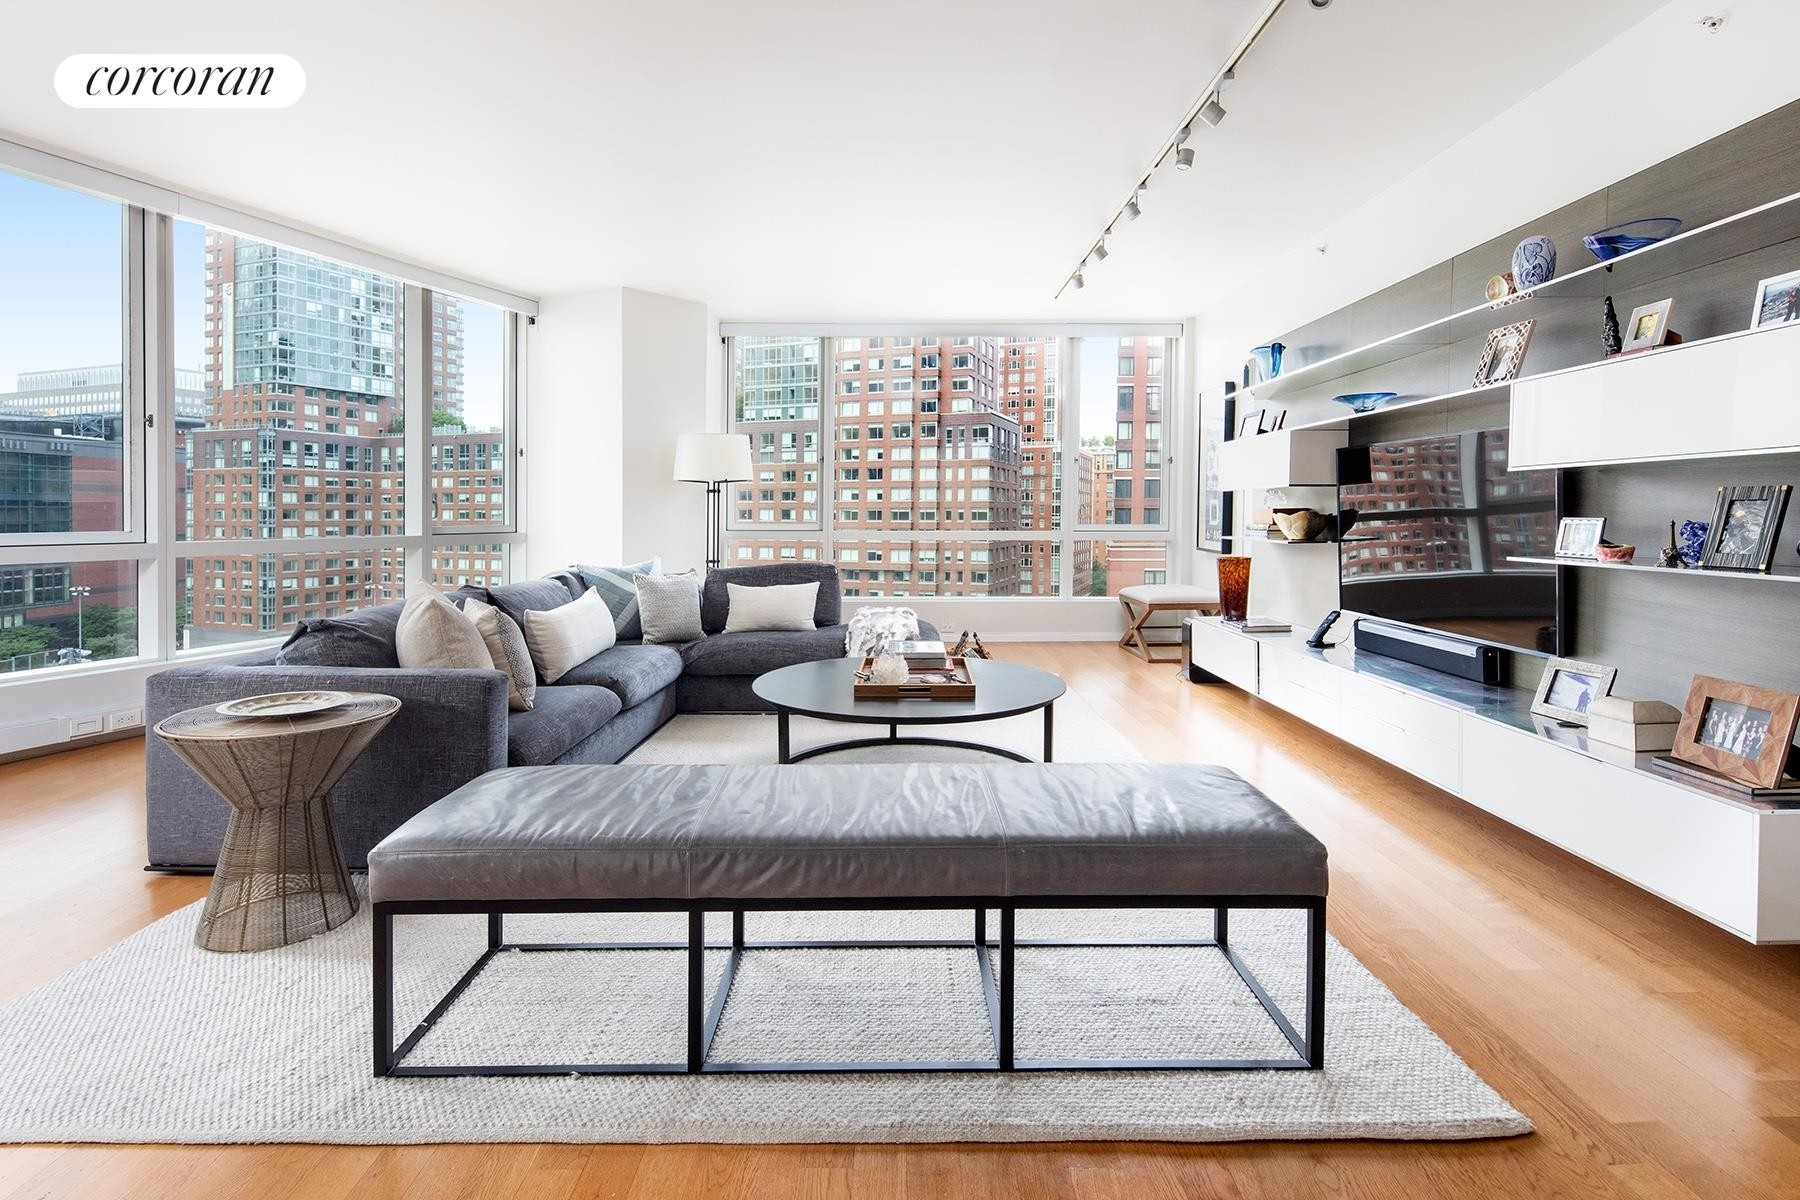 Property en 200 Chambers St, 9A TriBeCa, New York, NY 10007